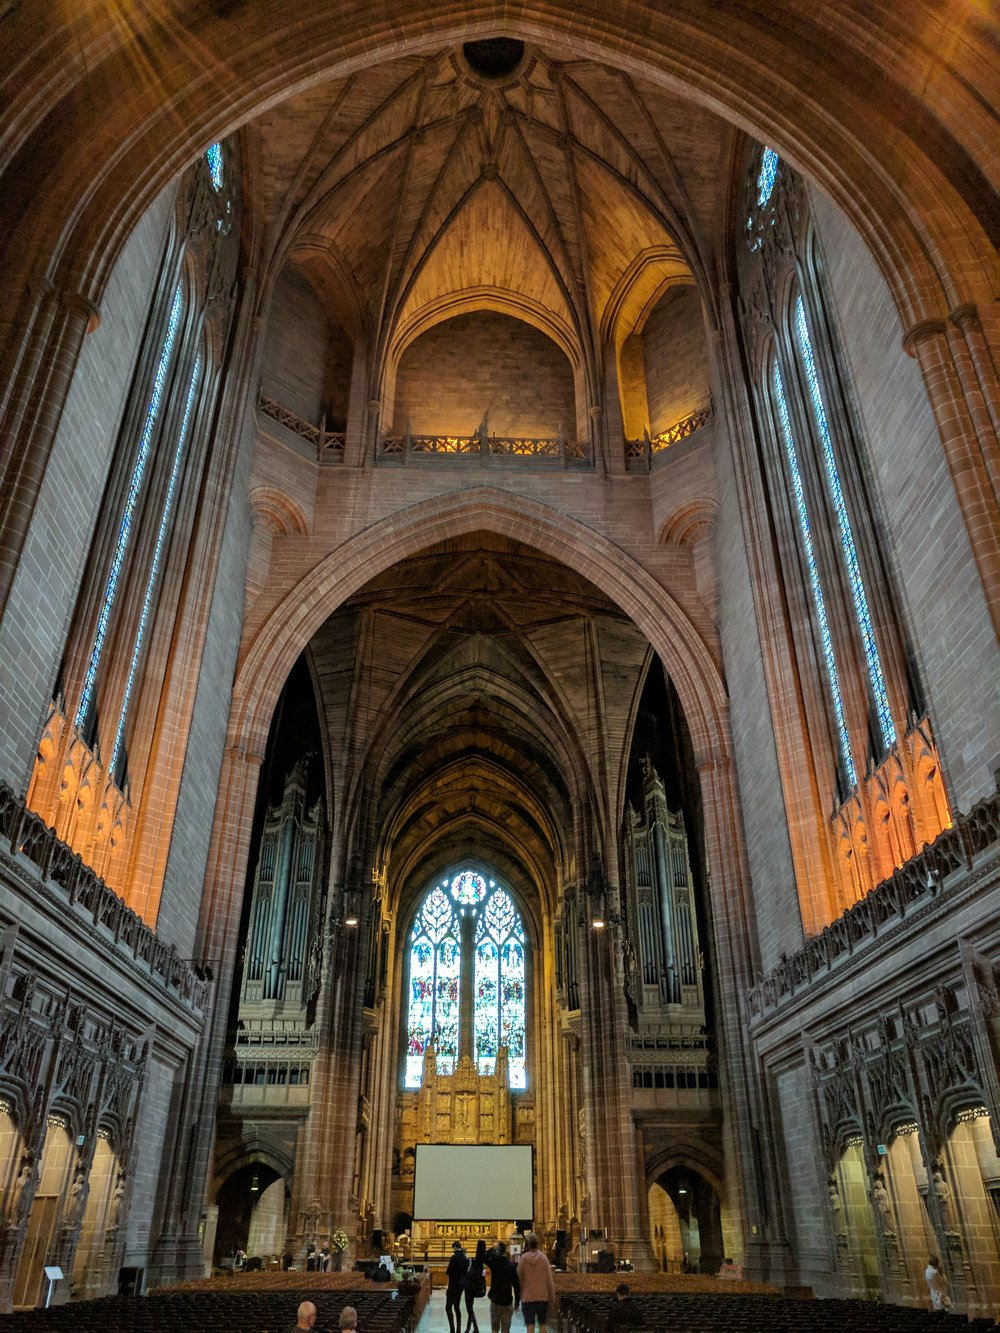 Inside of the Liverpool Cathedral